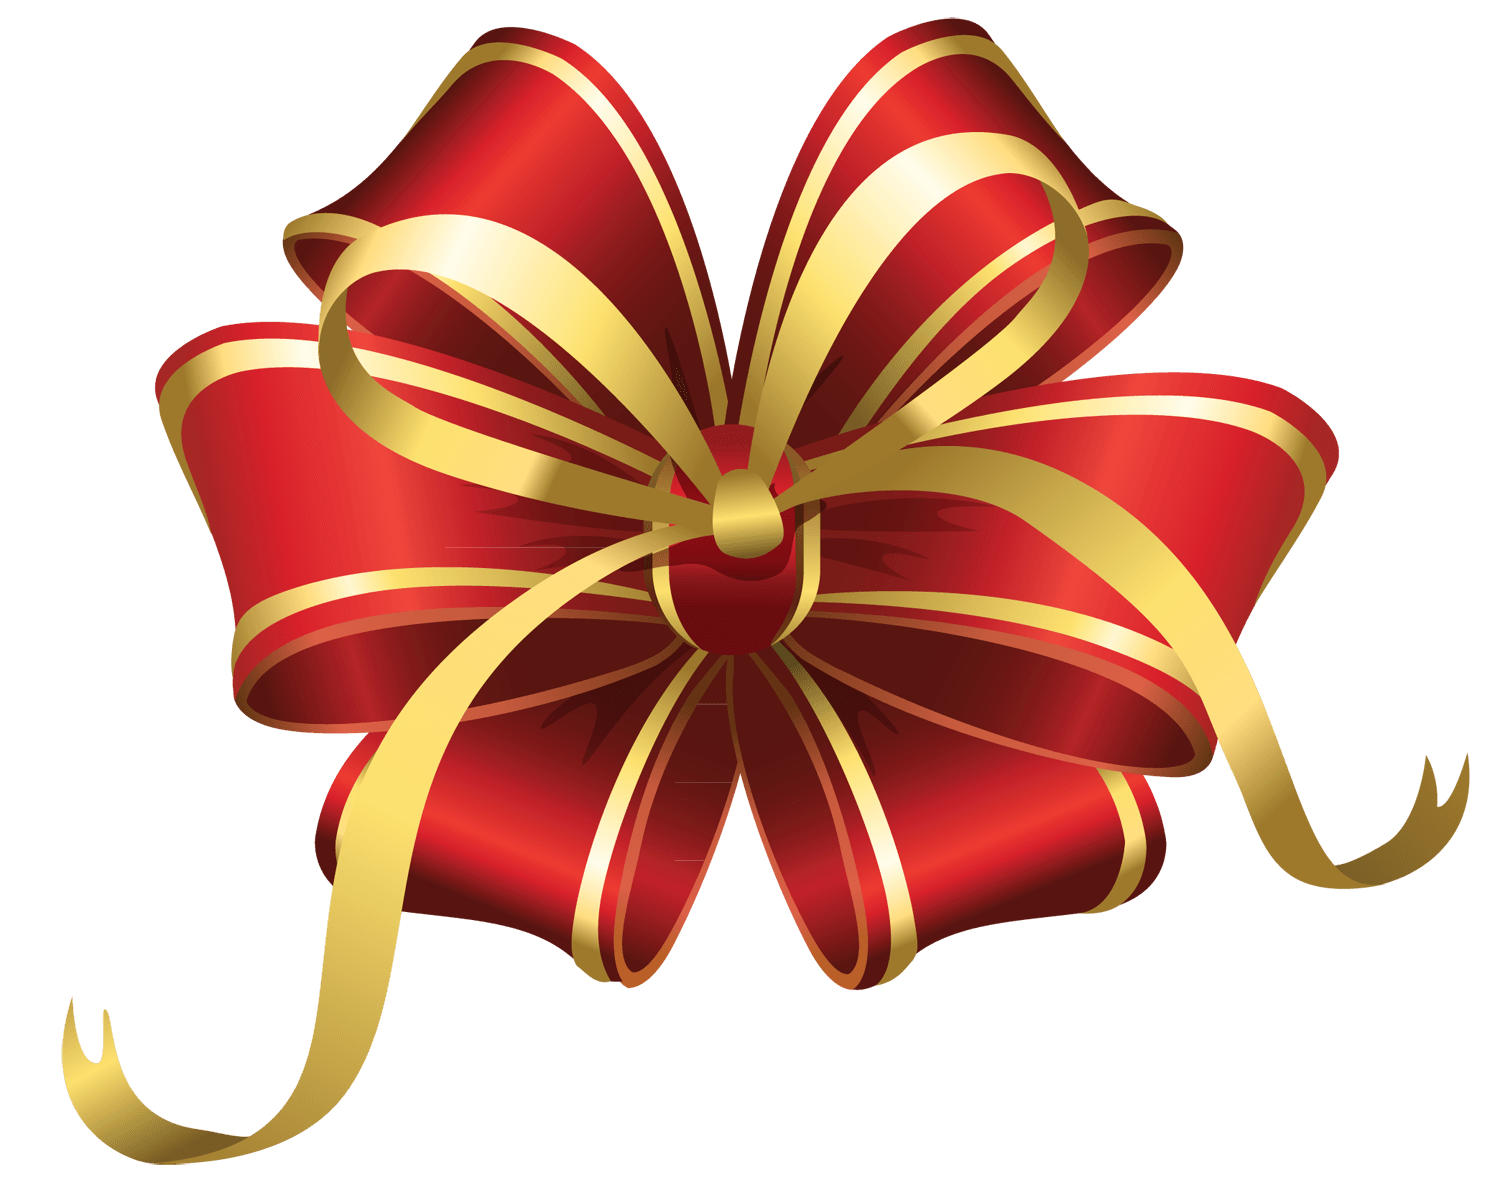 Christmas Star Ribbon Transparent PNG